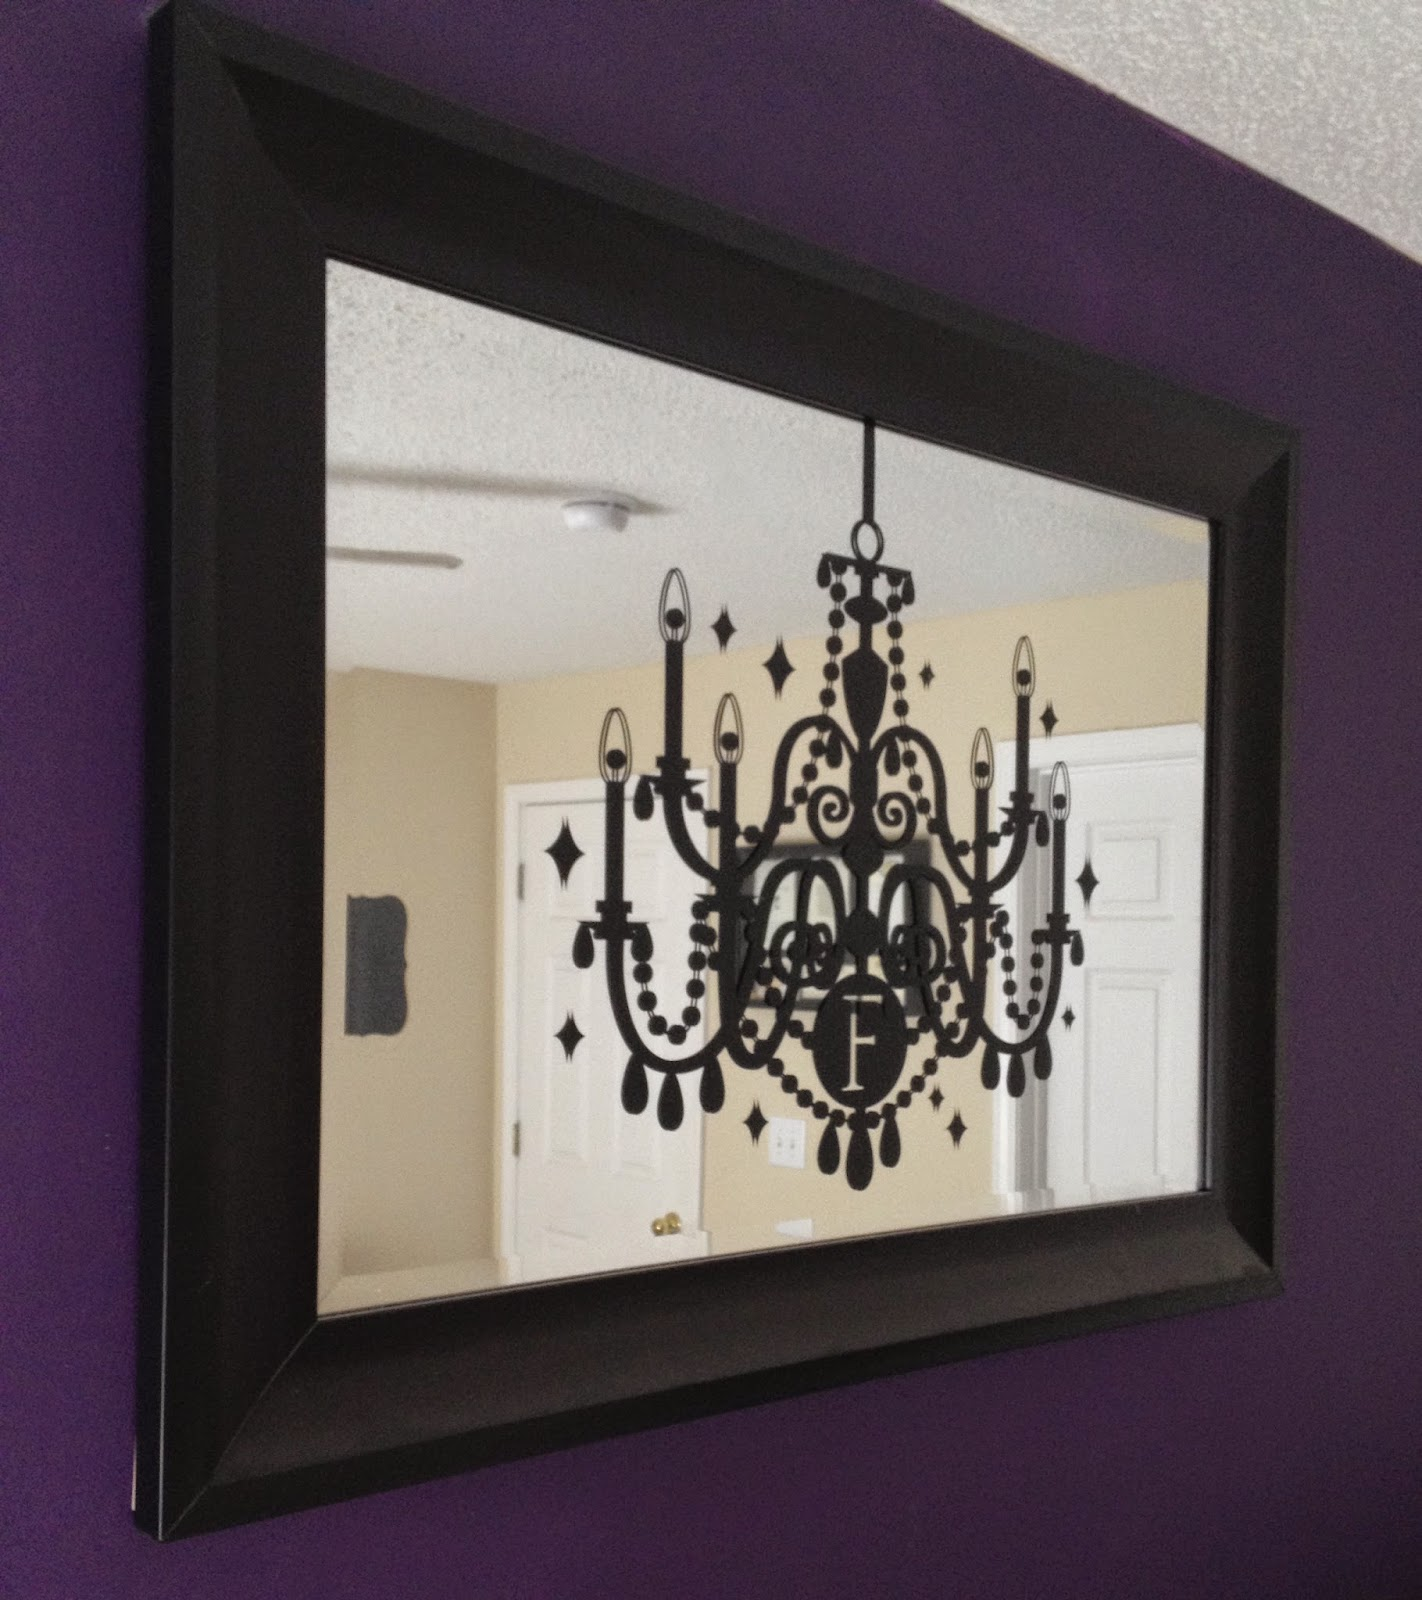 Chandelier Decal on Mirror